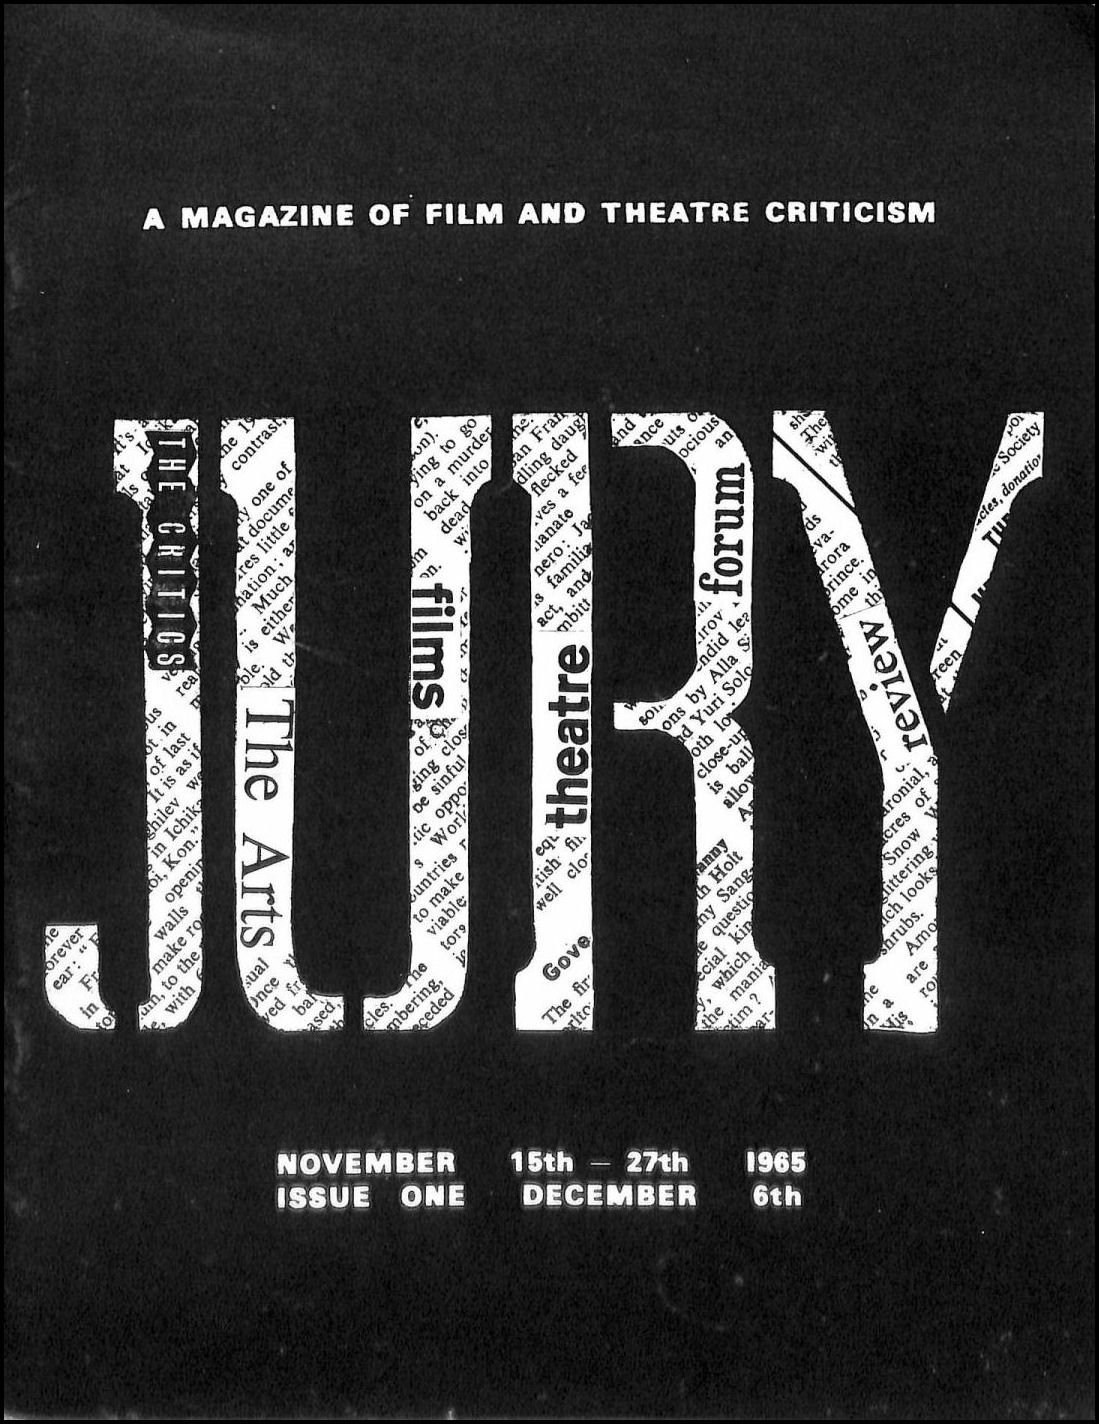 Jury, A Magazine of Film and Theatre Criticism November 15th-27th 1965, Anne Burge